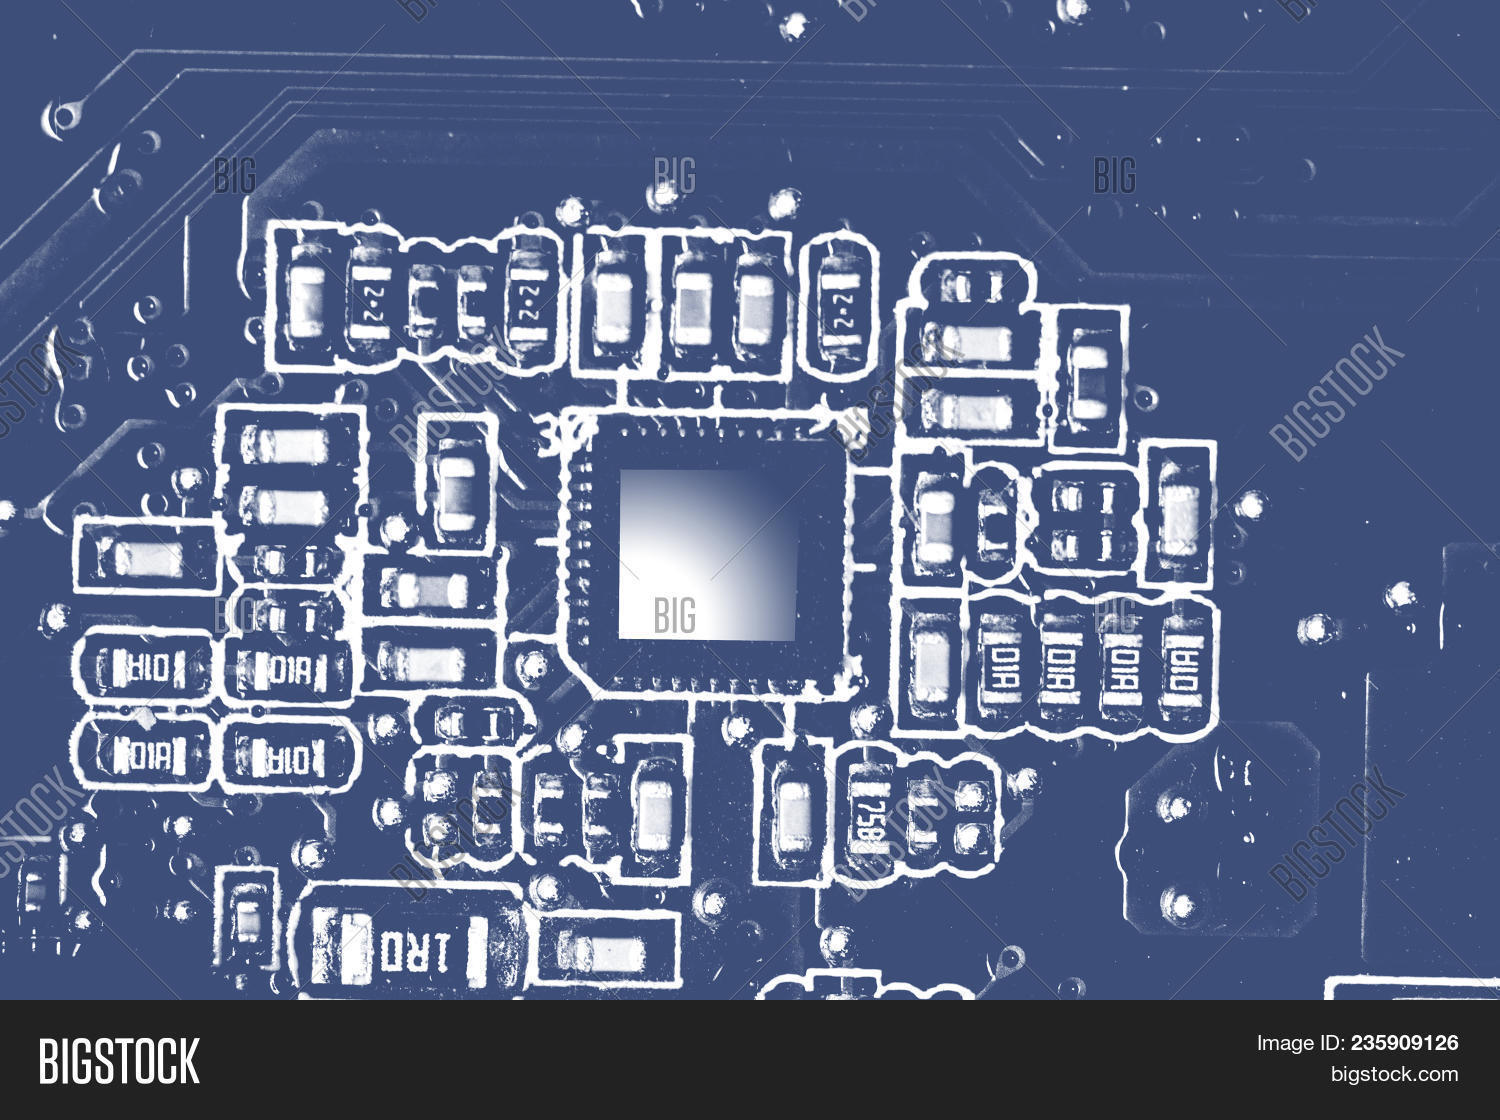 hight resolution of close up of electronic circuit board with chips and processors motherboard laptop computer motherbo